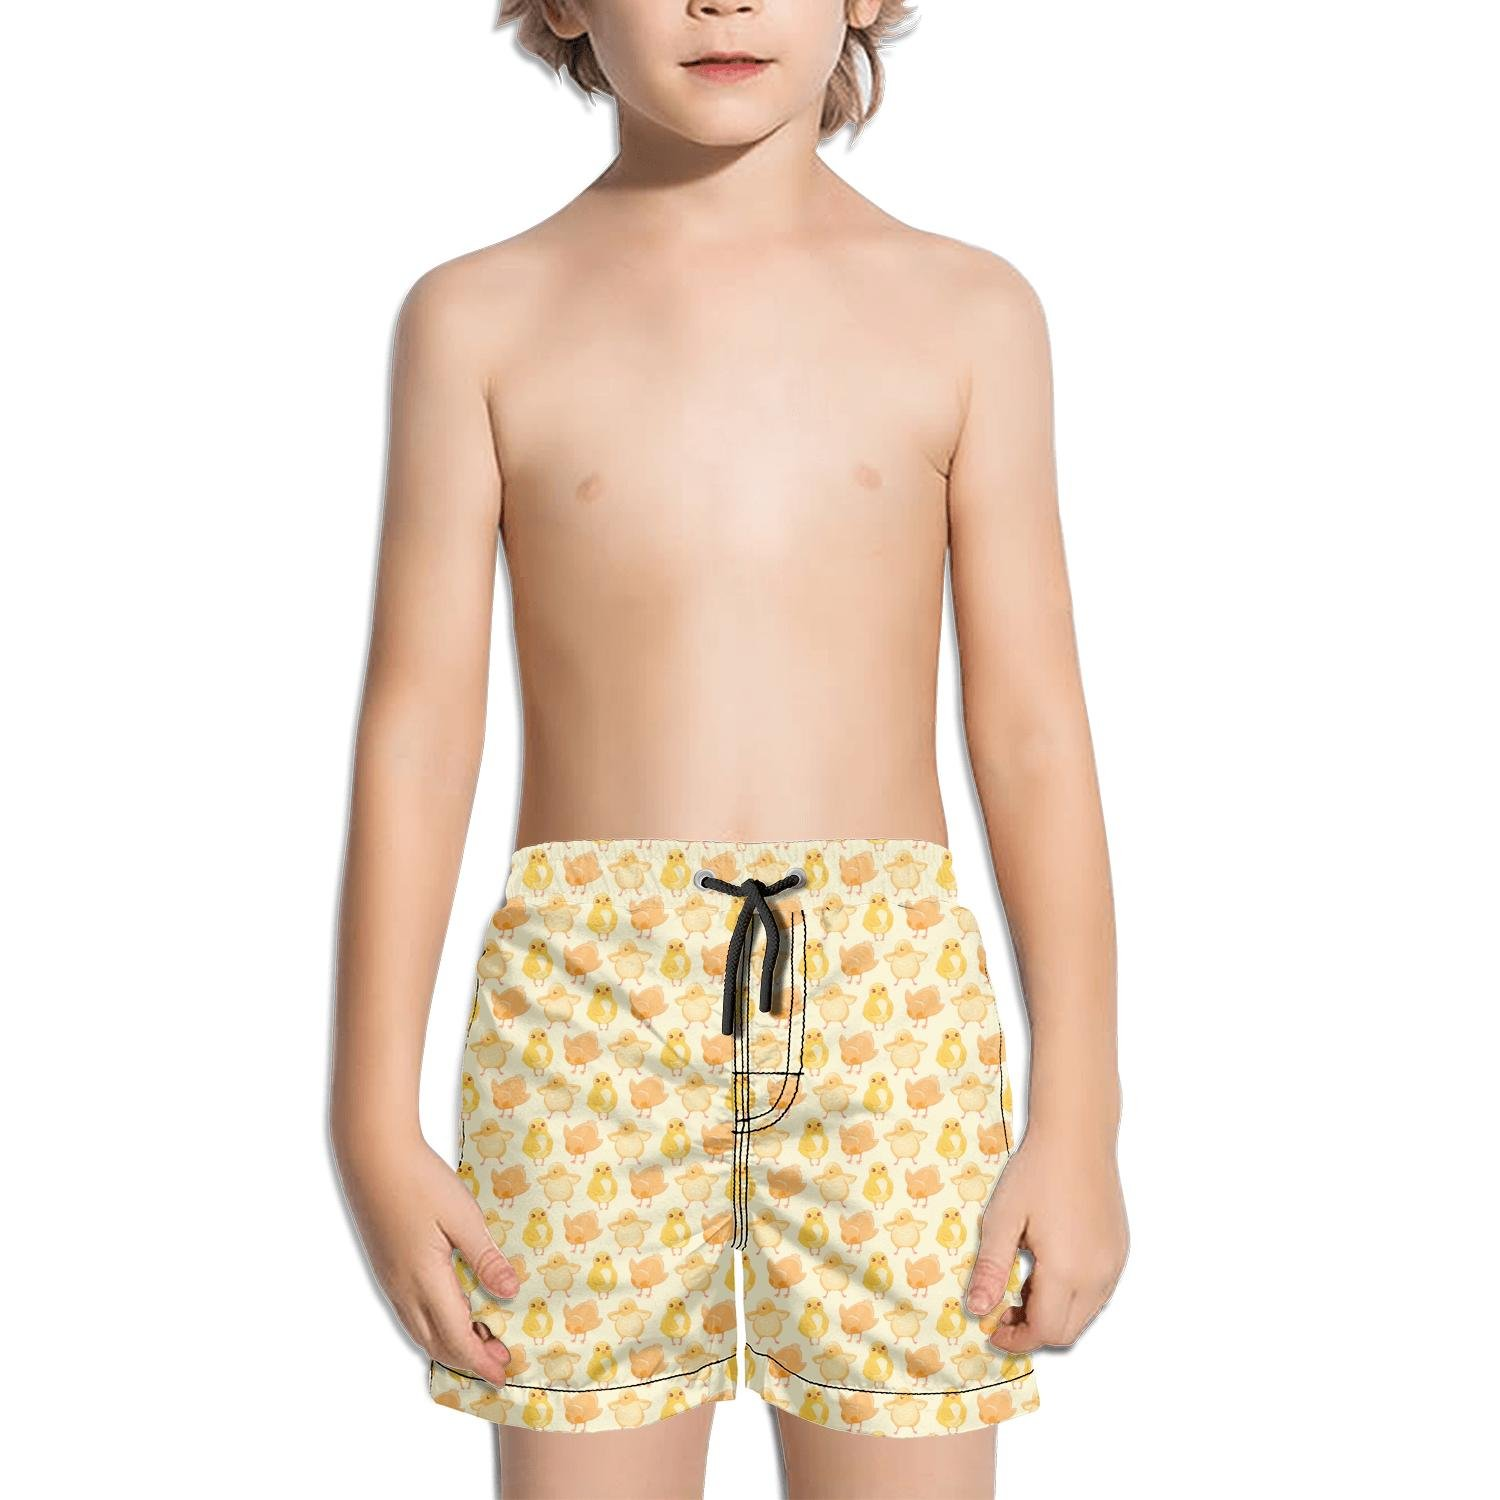 Lenard Hughes Boys Quick Dry Beach Shorts with Pockets Kids Chicks Dig Me Swim Trunks for Summer